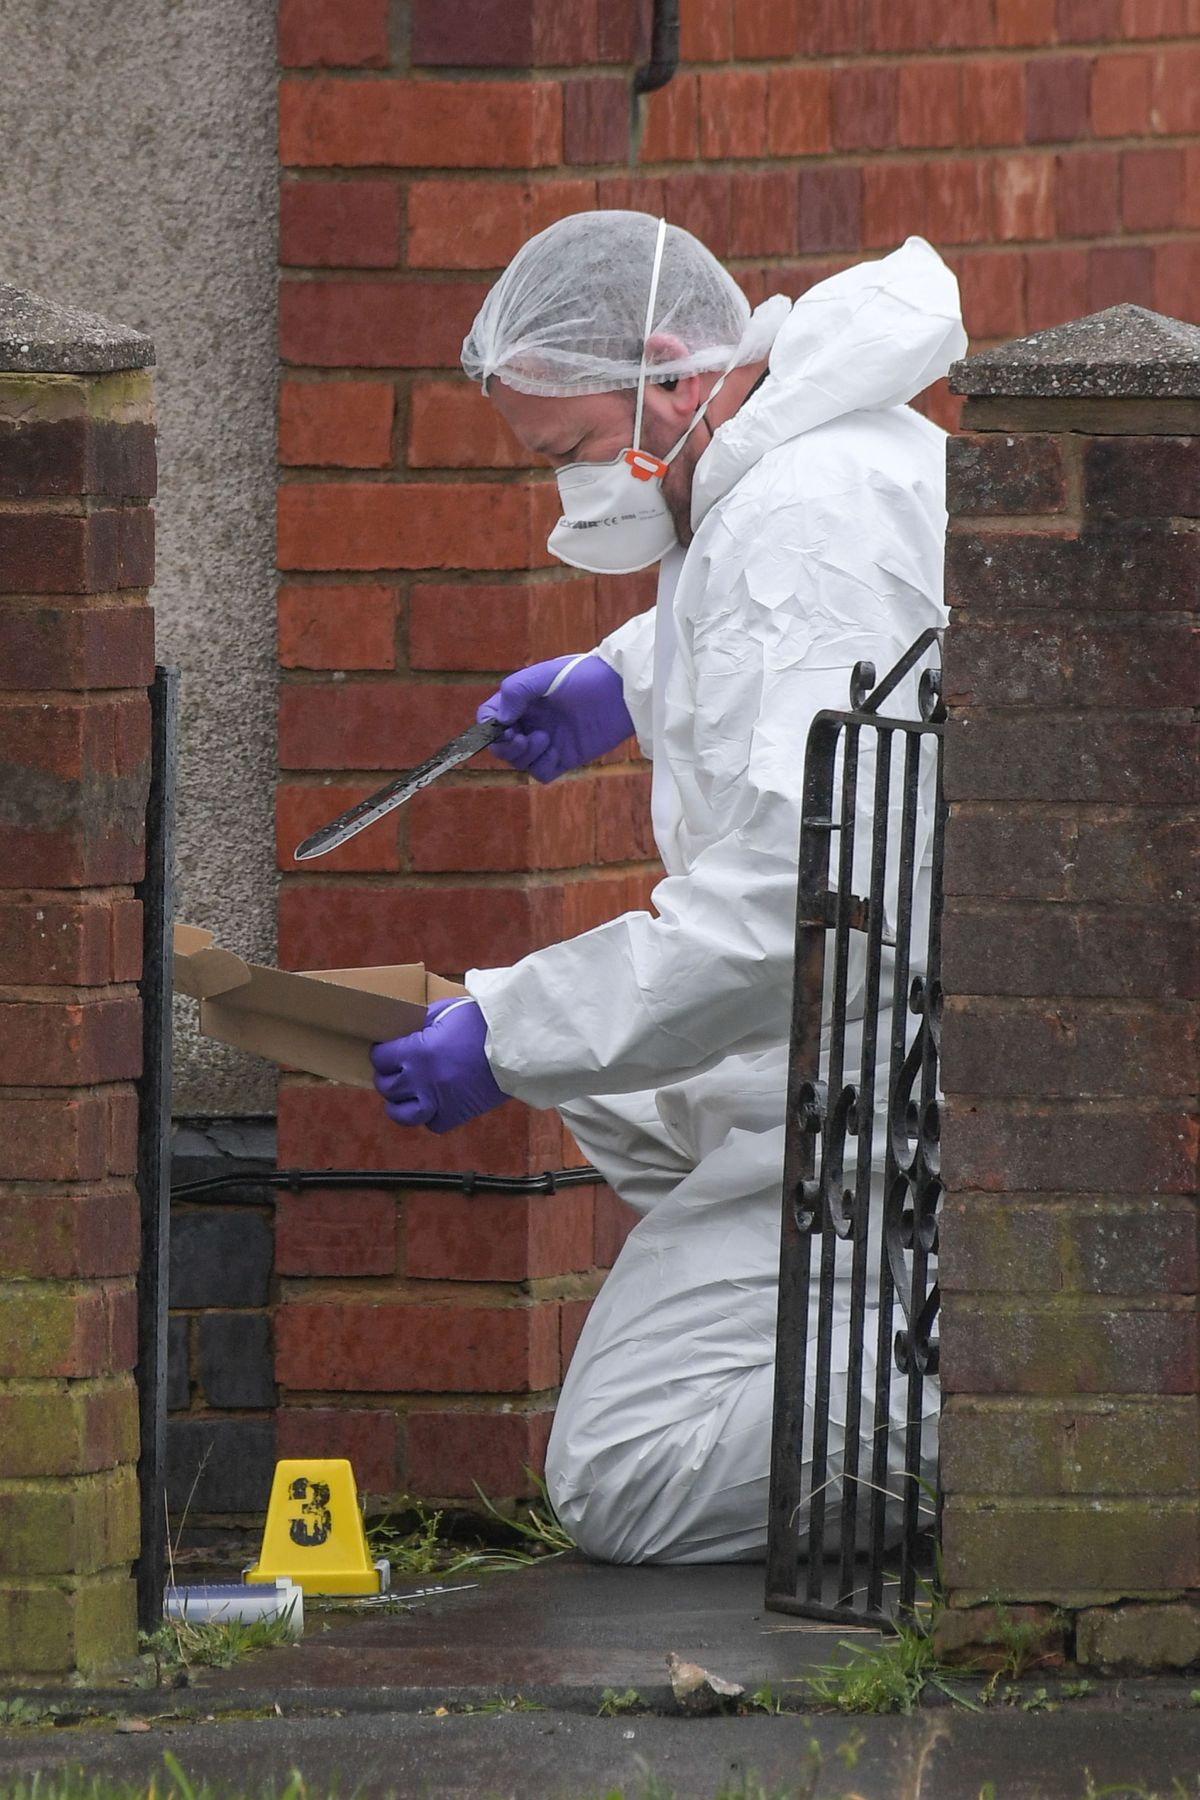 A forensic officer recovers a blade on Pensnett Road. Photo: SnapperSK